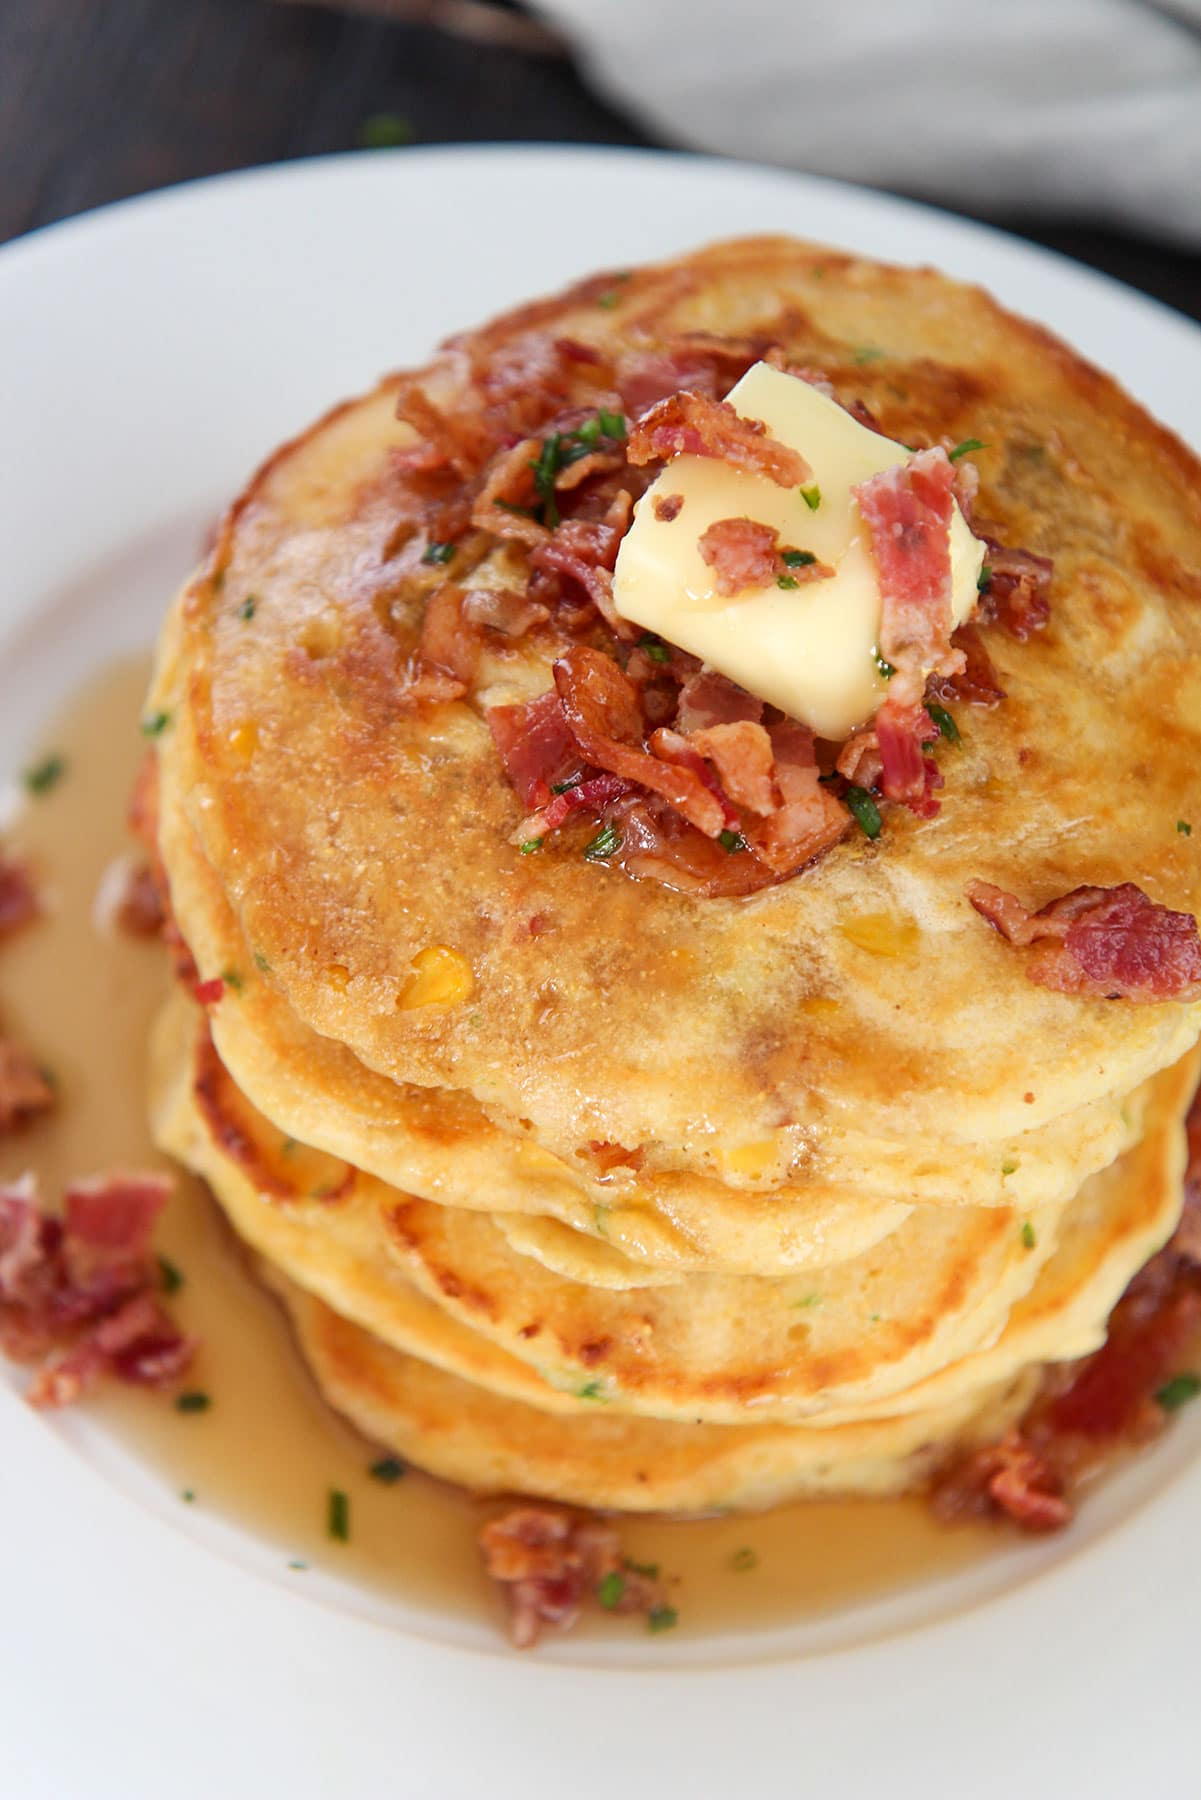 five corn cakes on a plate.